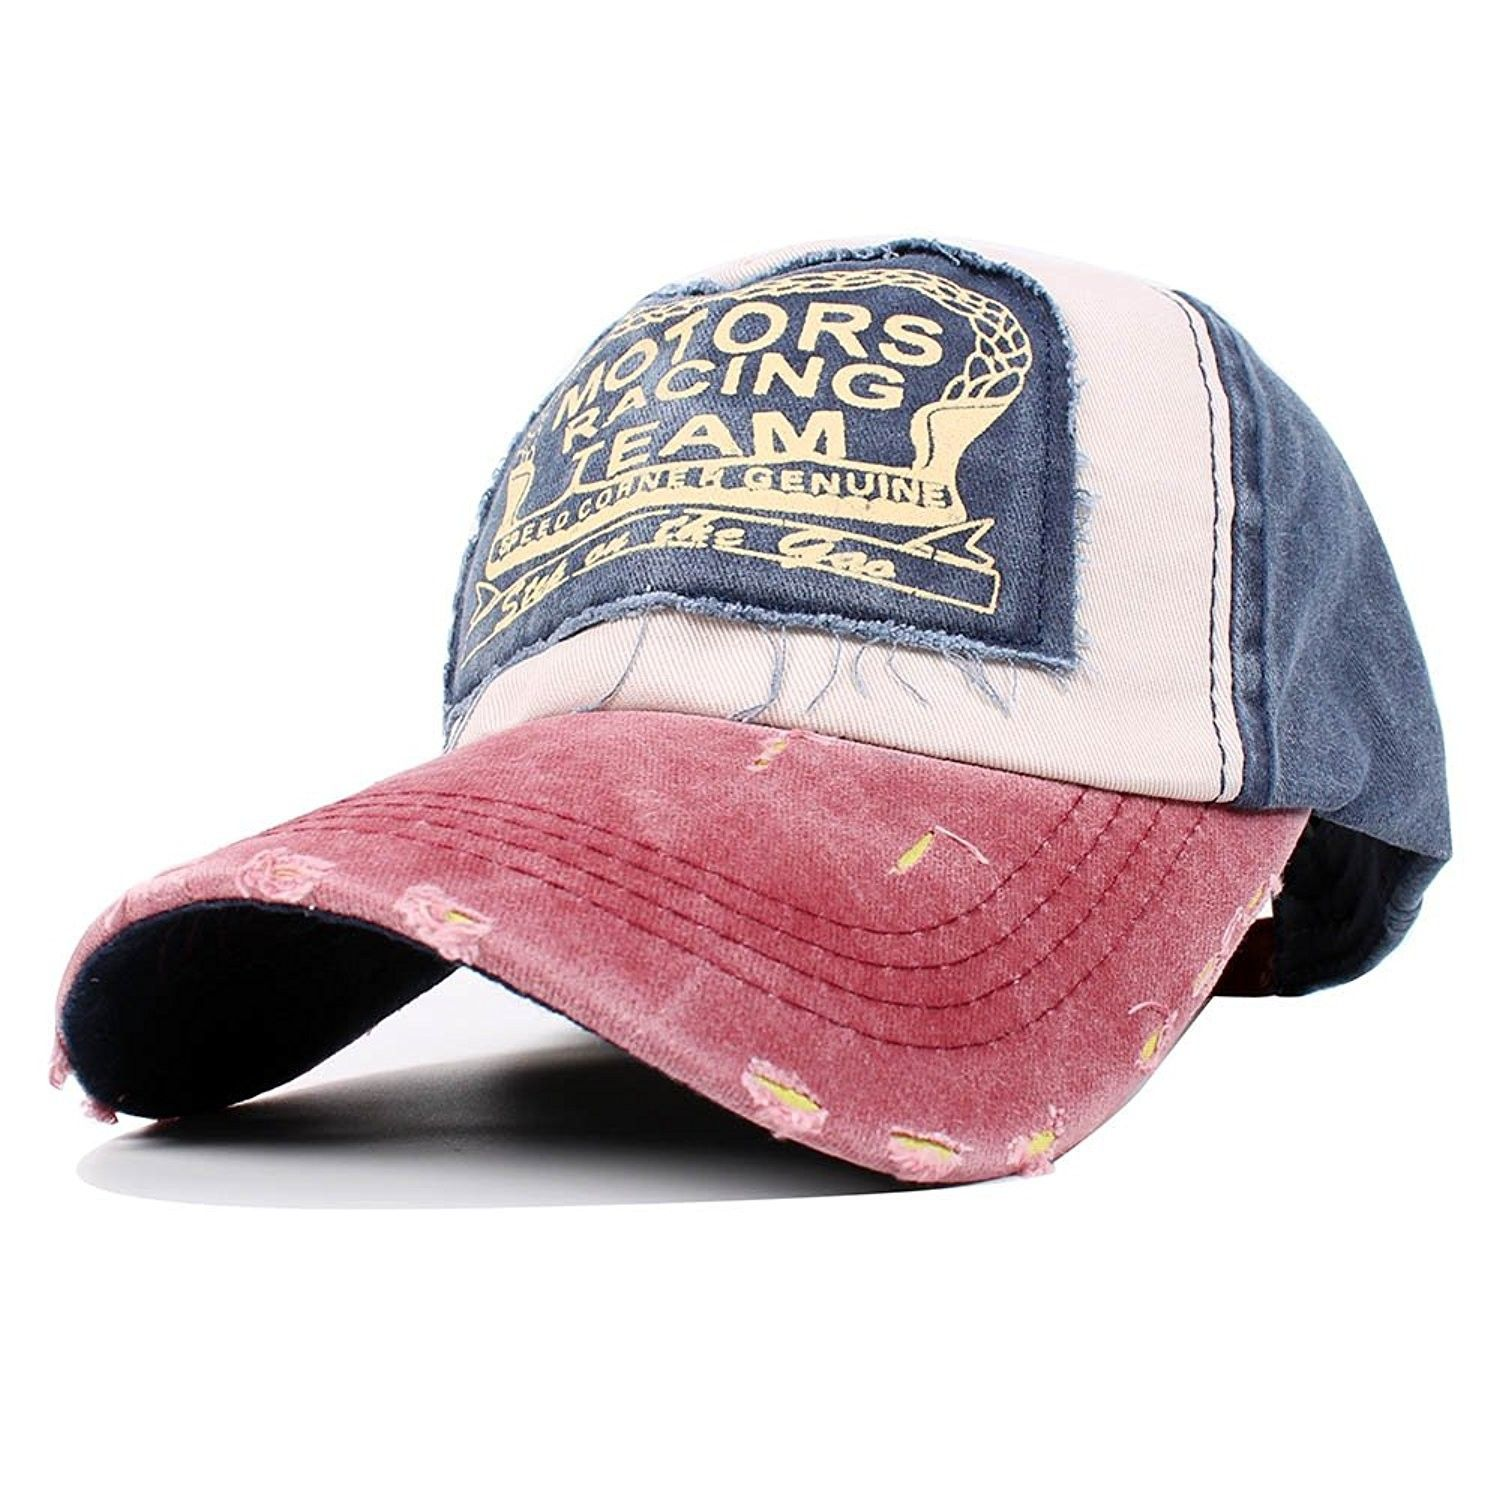 Vintage Washed Denim Cotton Sports Baseball Cap For Women and Men -  Burgundynavy - CS185ZX589L - 10f61652face